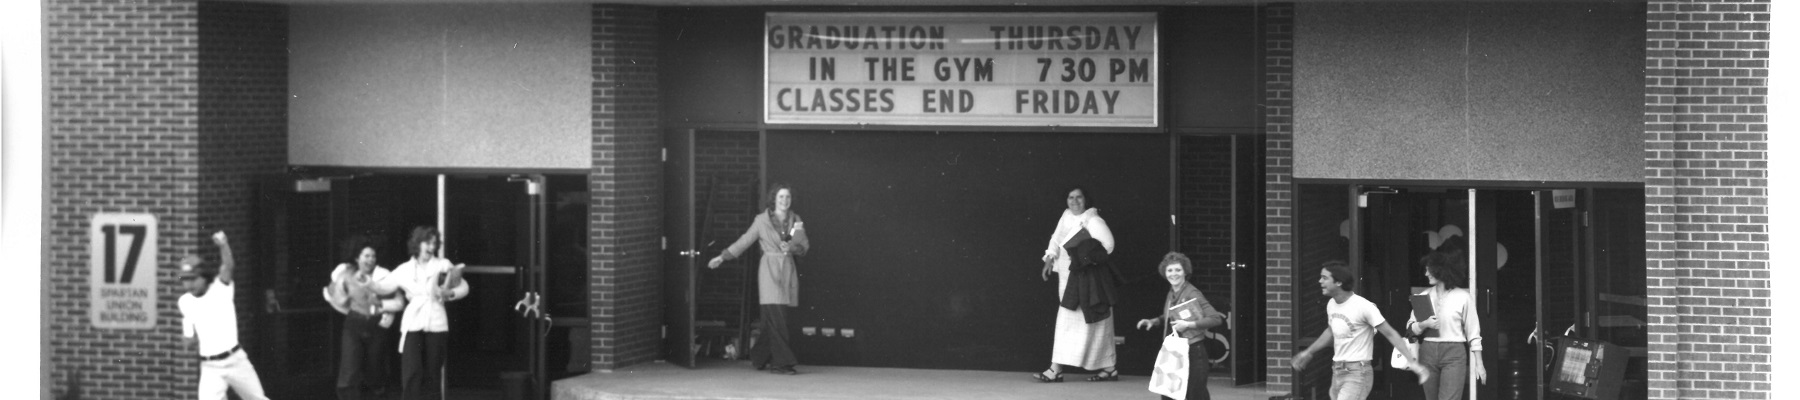 Students exiting the student union building in the 1970s black and white